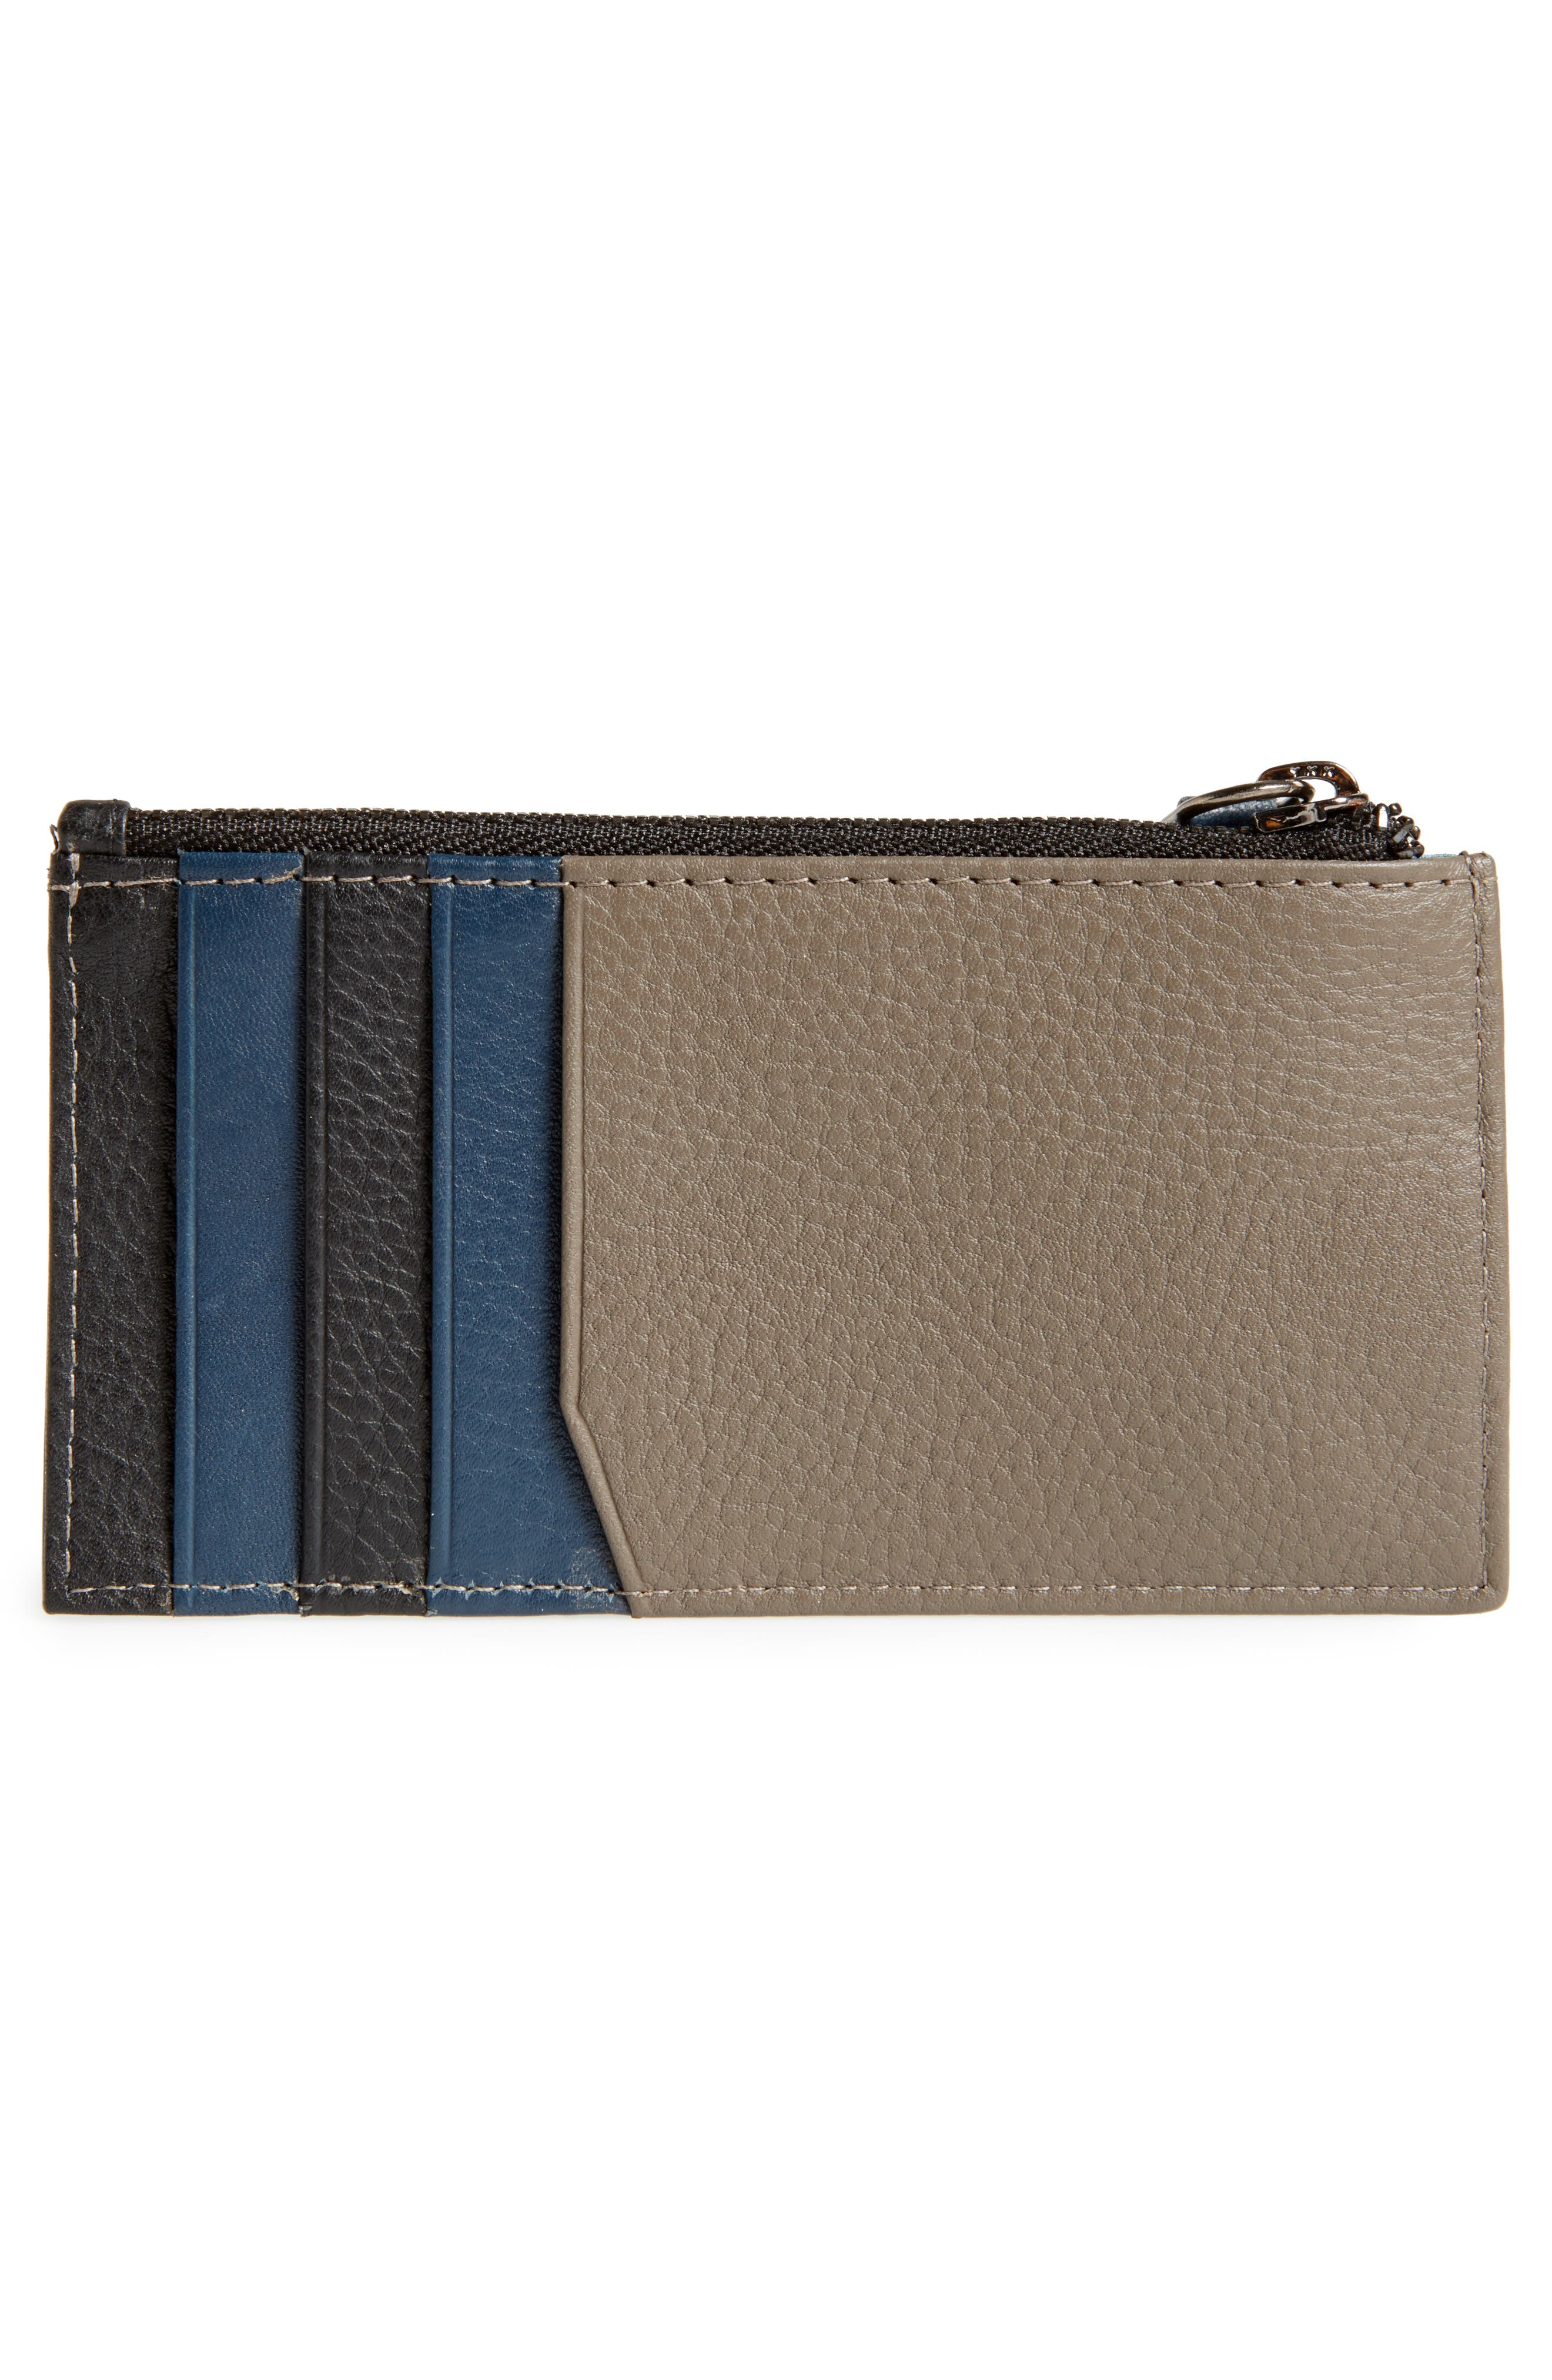 Jammee Leather Coin Pouch,                             Alternate thumbnail 3, color,                             001